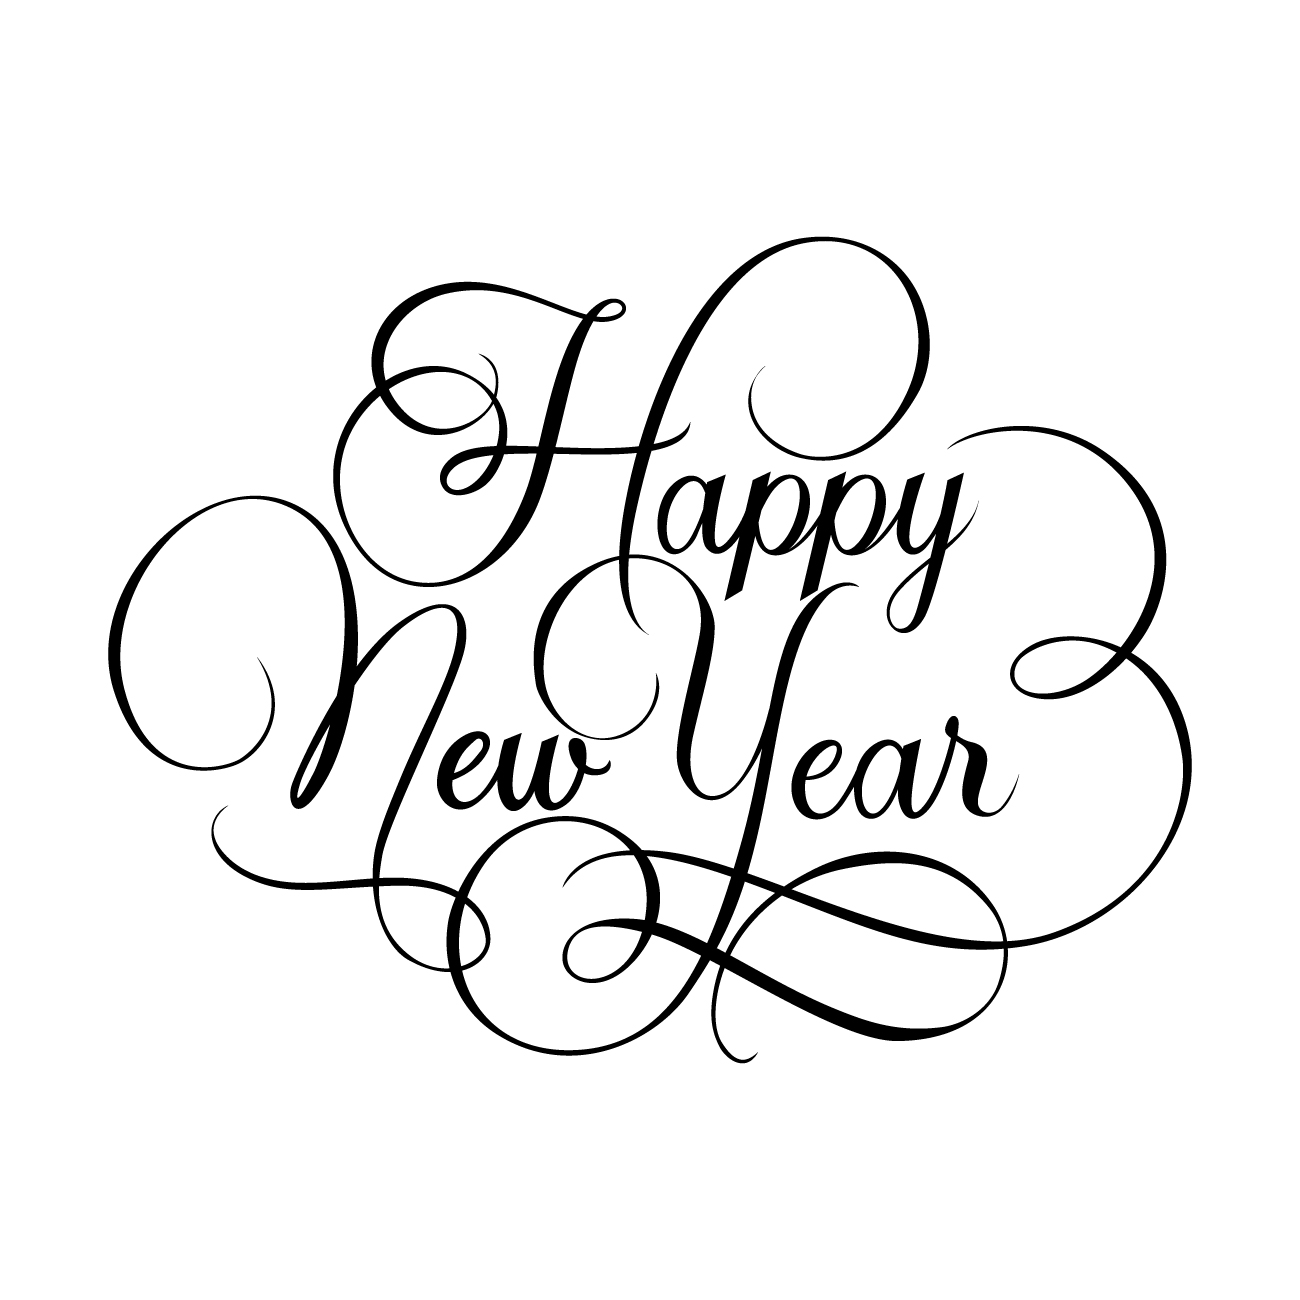 Happy New Year 2017 Drawing at GetDrawings.com | Free for personal ...